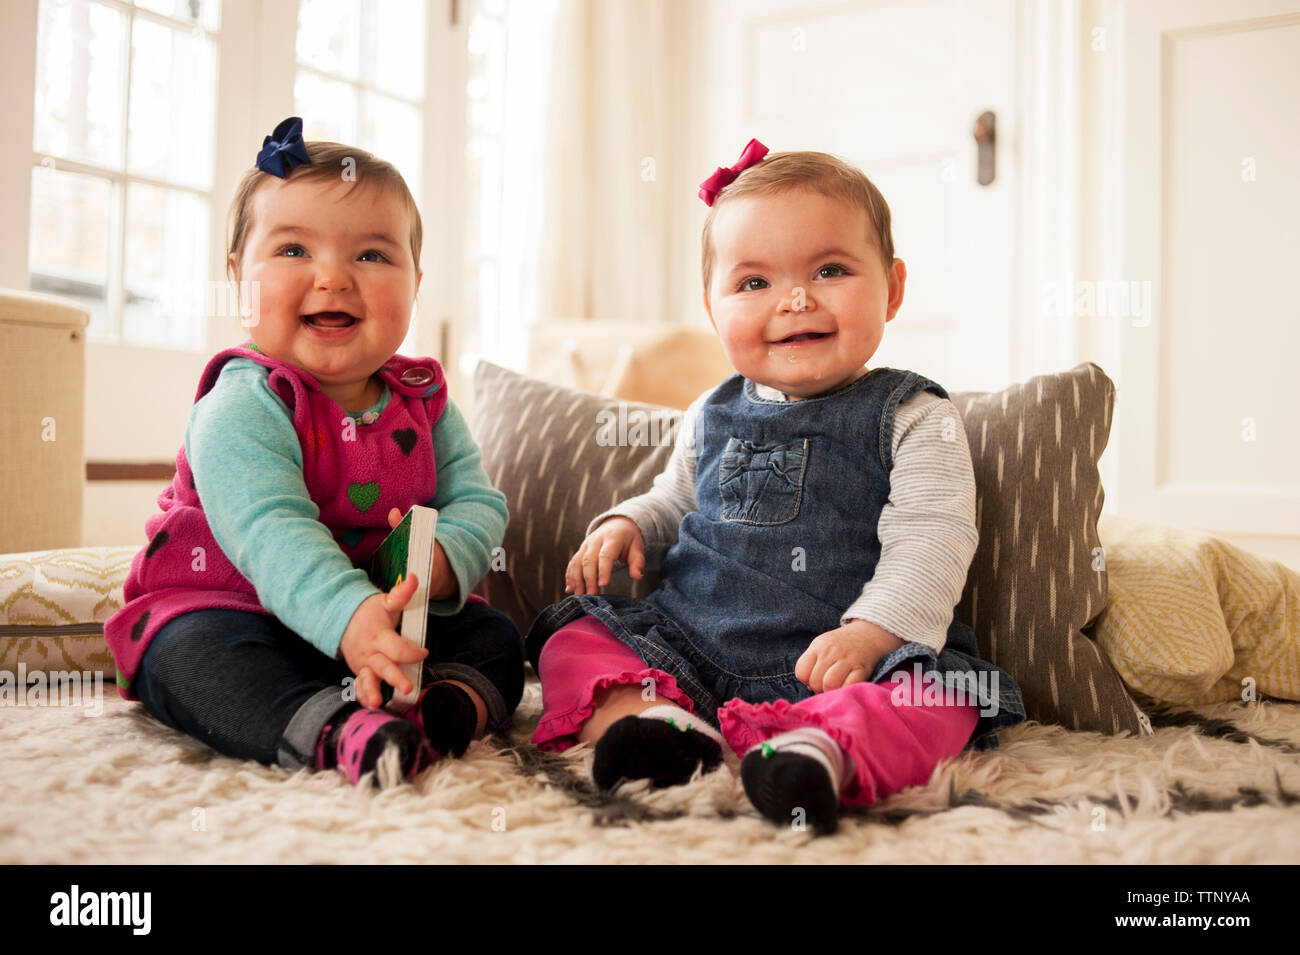 Cheerful baby girls sitting on rug at home - Stock Image